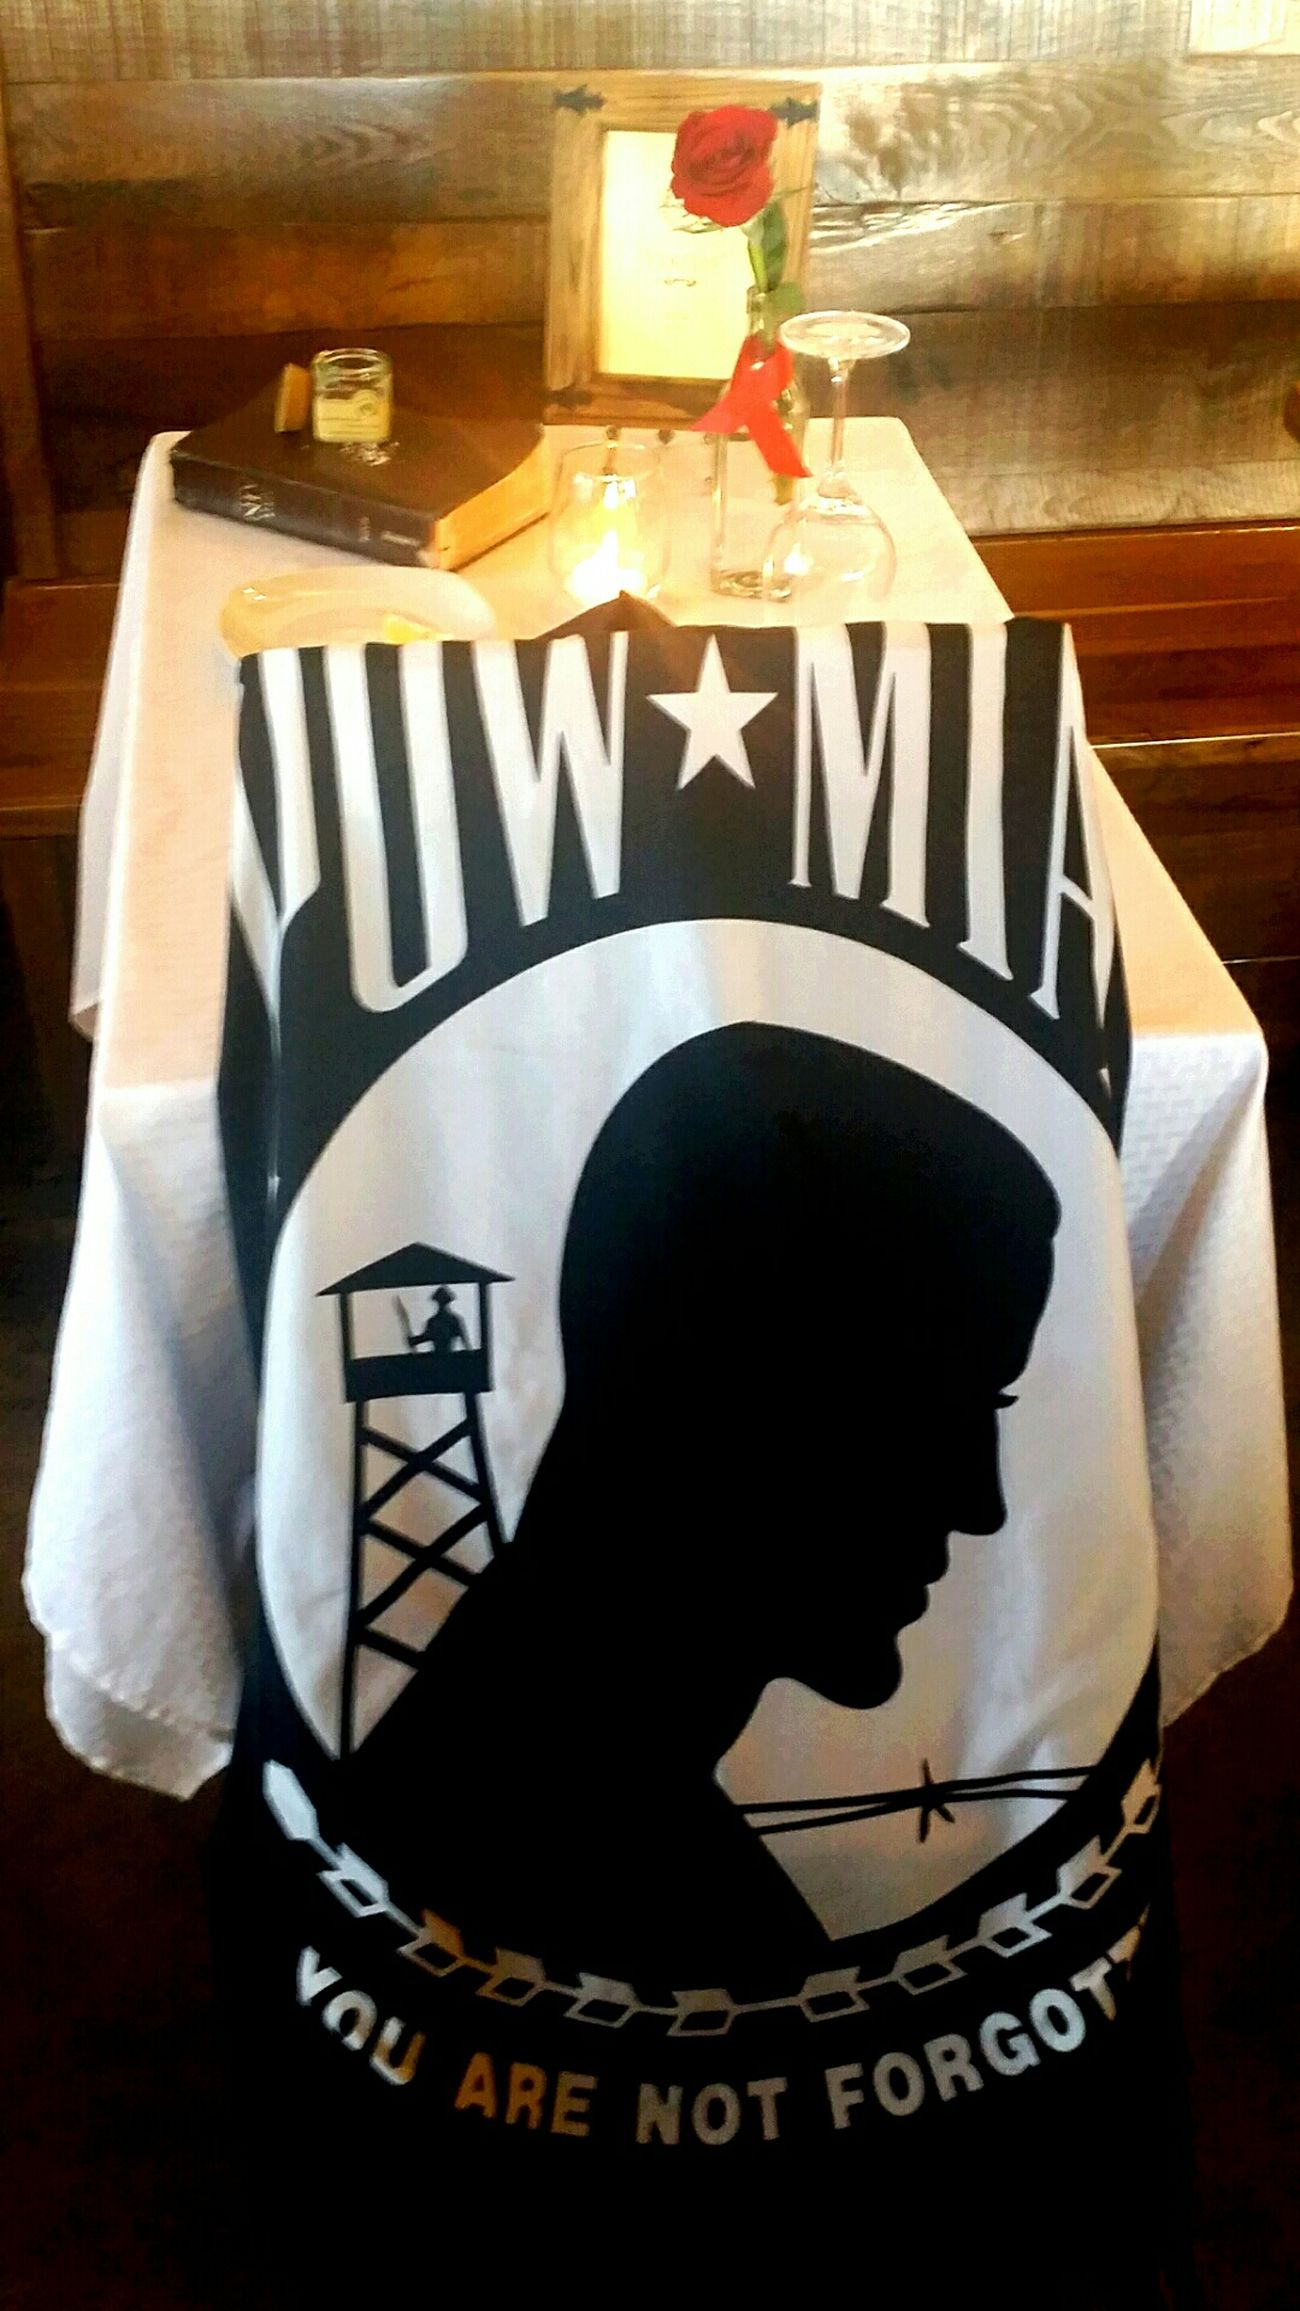 Capturing Freedom Veteran Some Gave All Remembering Remember Never Forget Ultimate Sacrifice POW MIA